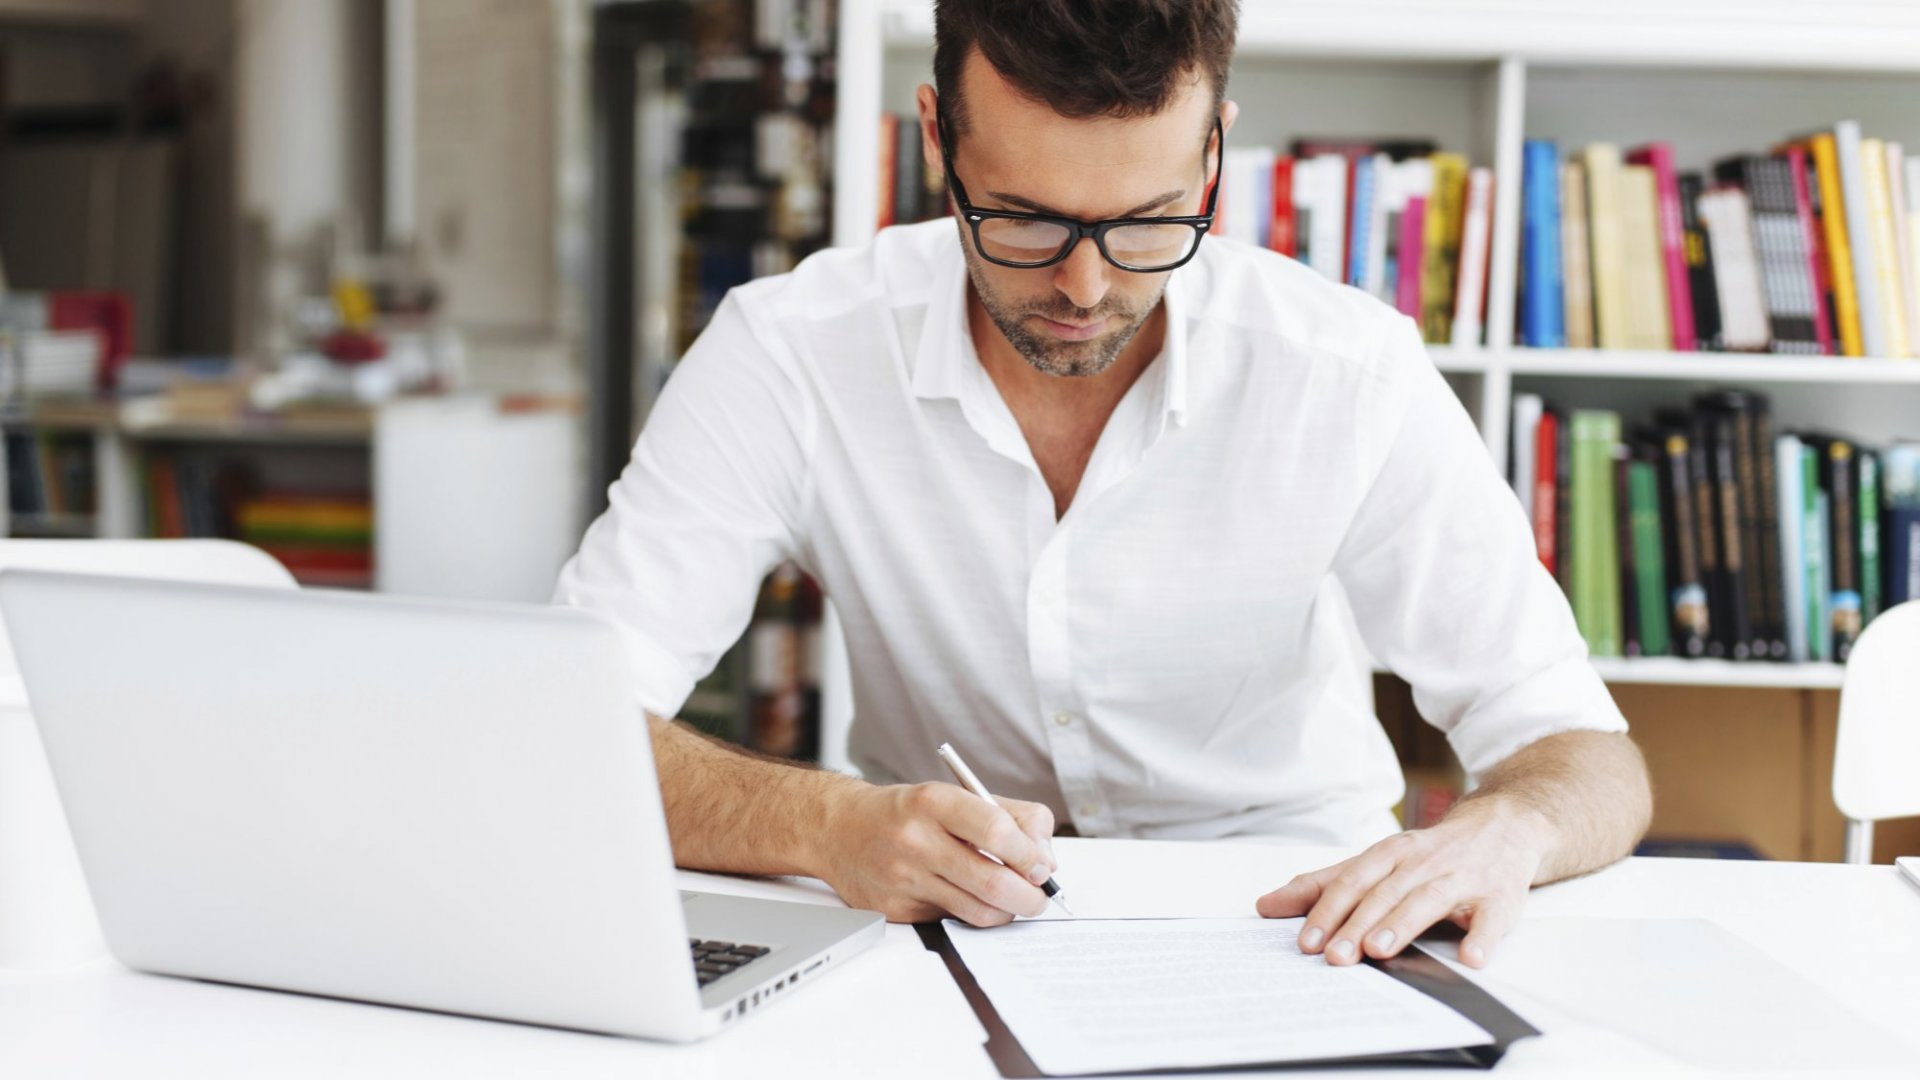 Use these writing hacks to write well quickly and effectively.